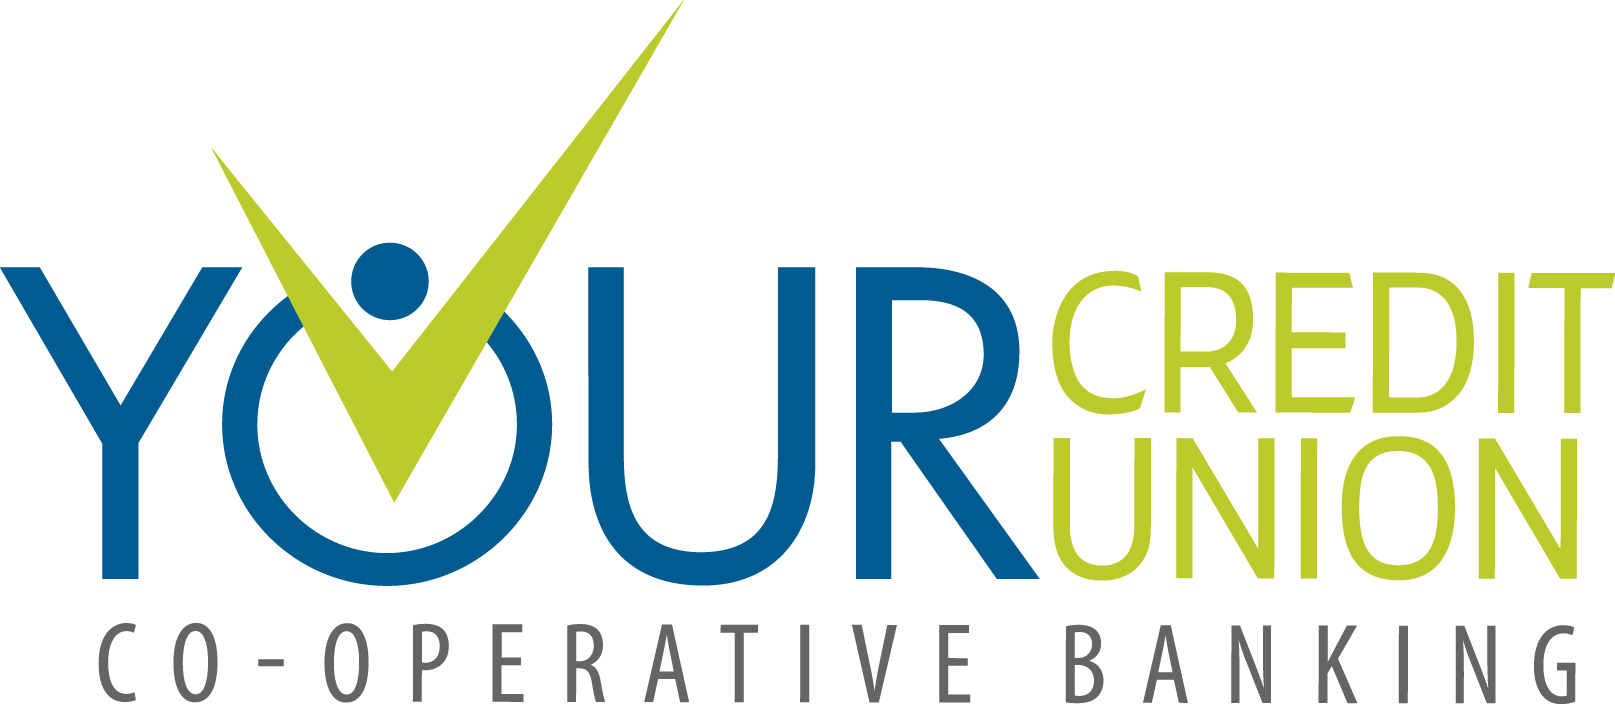 Your Credit Union Co-operative Banking